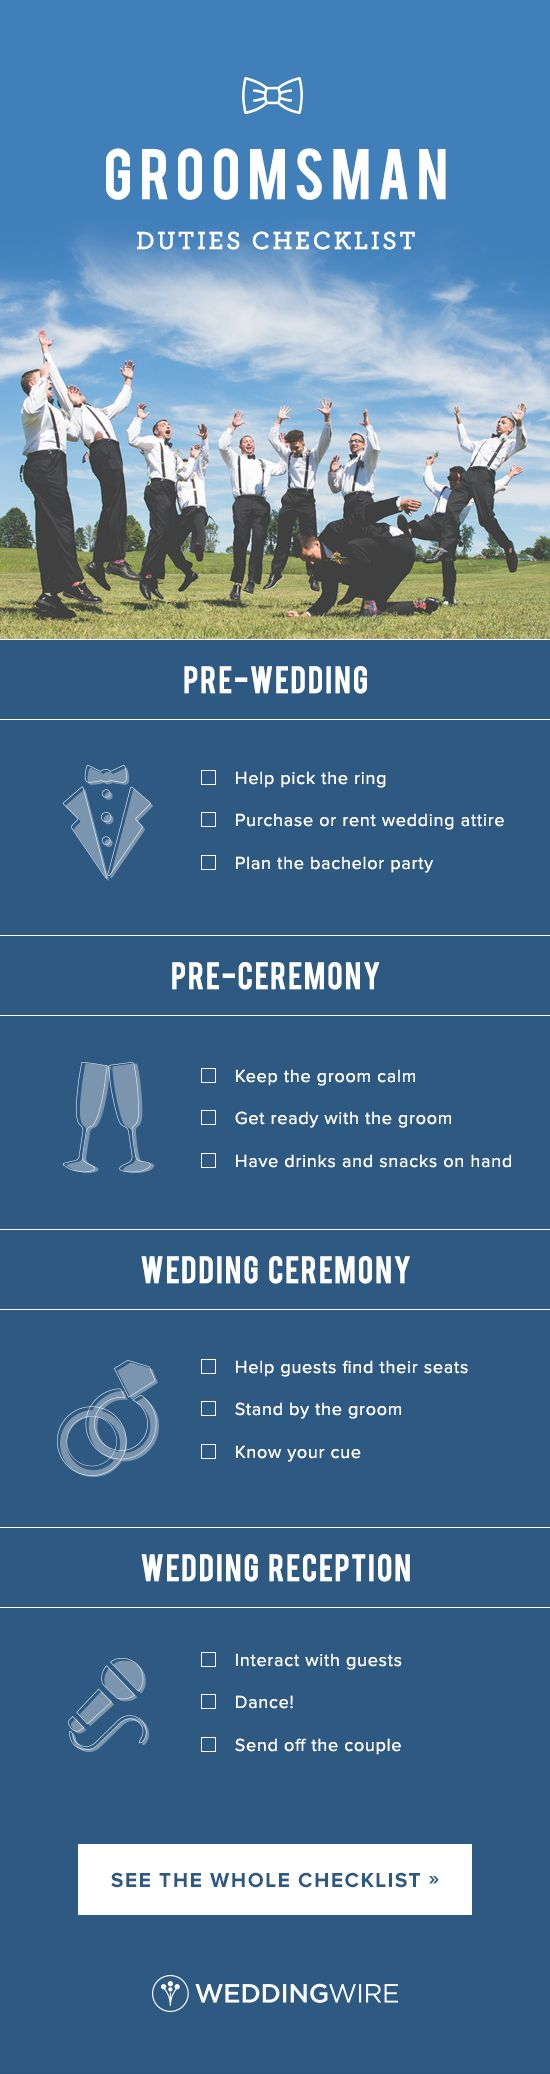 Groomsman Duties Checklist - Being a groomsmen in your friend's big day is a huge honor! See the ultimate groomsmen duties checklist so you don't miss a thing on @weddingwire! {Brett Loves Elle Photography}